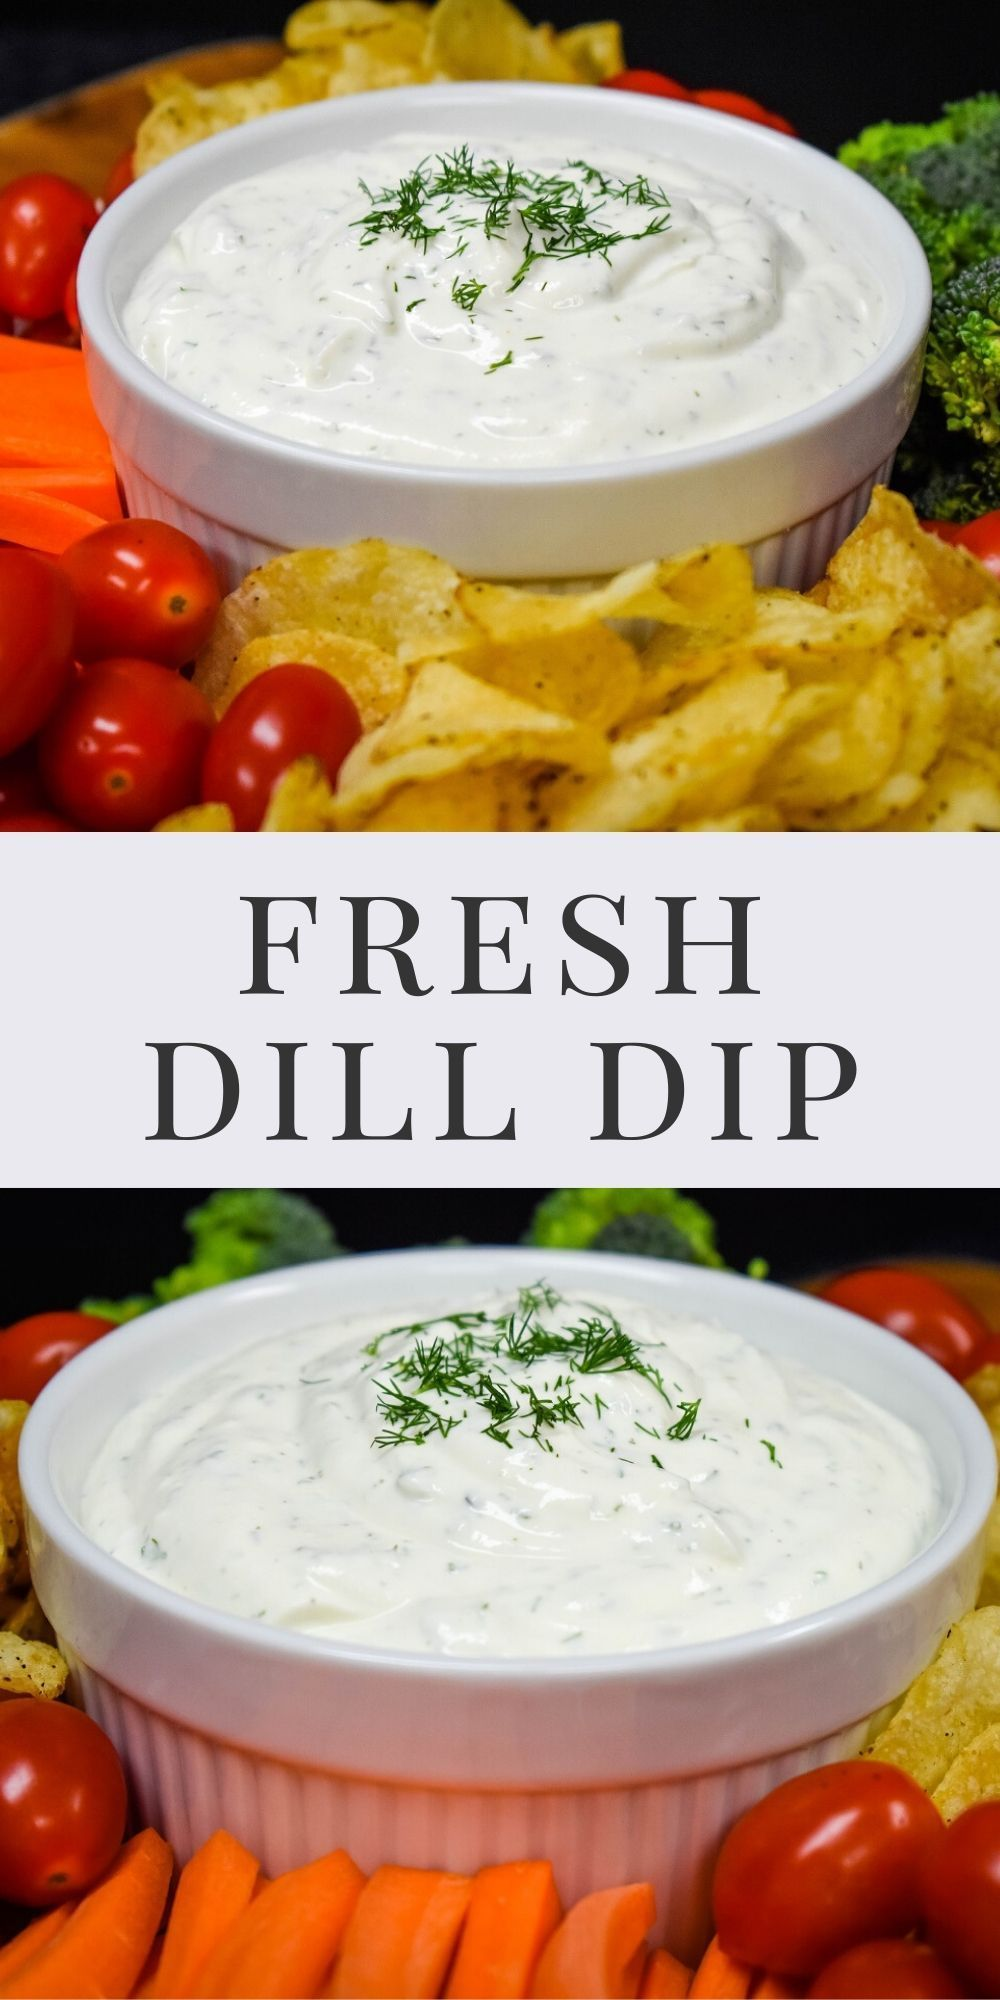 Fresh Dill Dip In 2020 Dill Recipes Dill Dip Recipes Dill Veggie Dip Recipe